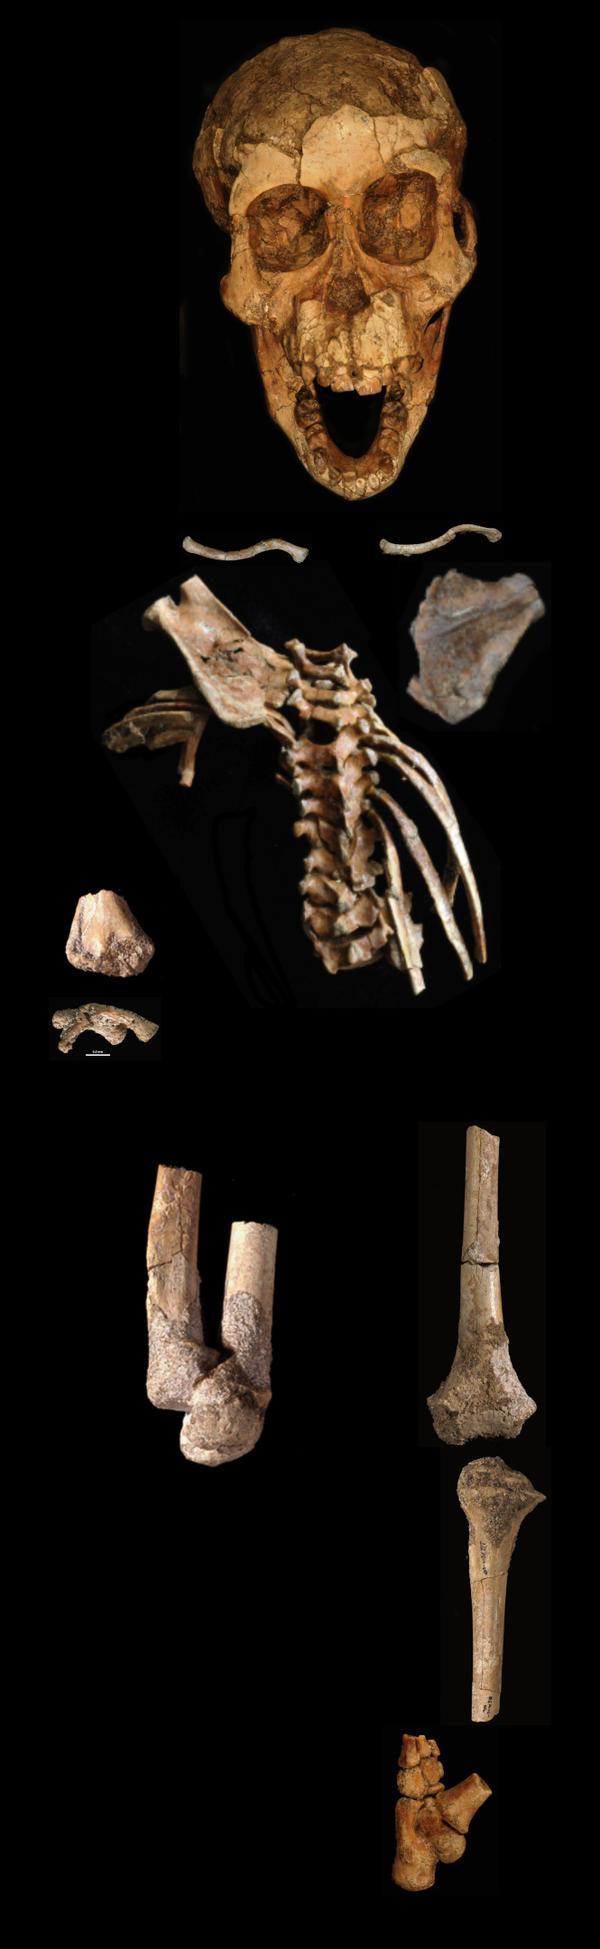 The full skeleton of Selam, including the spinal column.